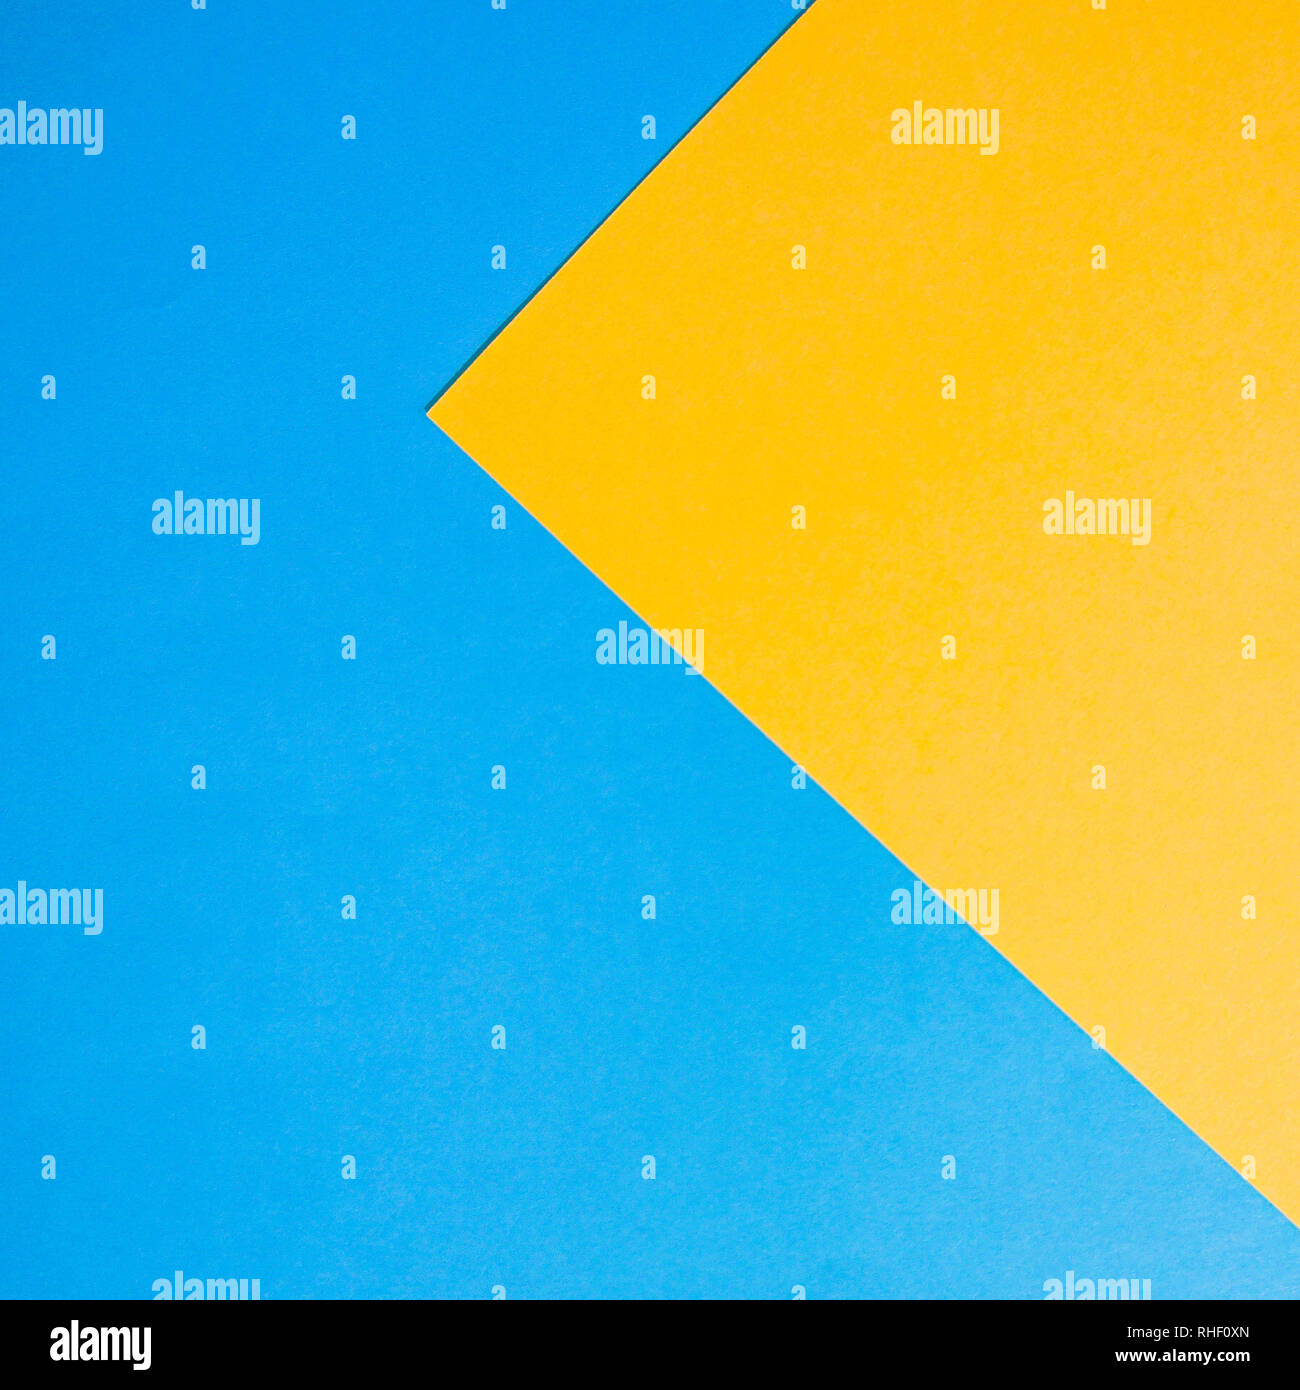 Abstract paper background for design. Blue and yellow. - Stock Image